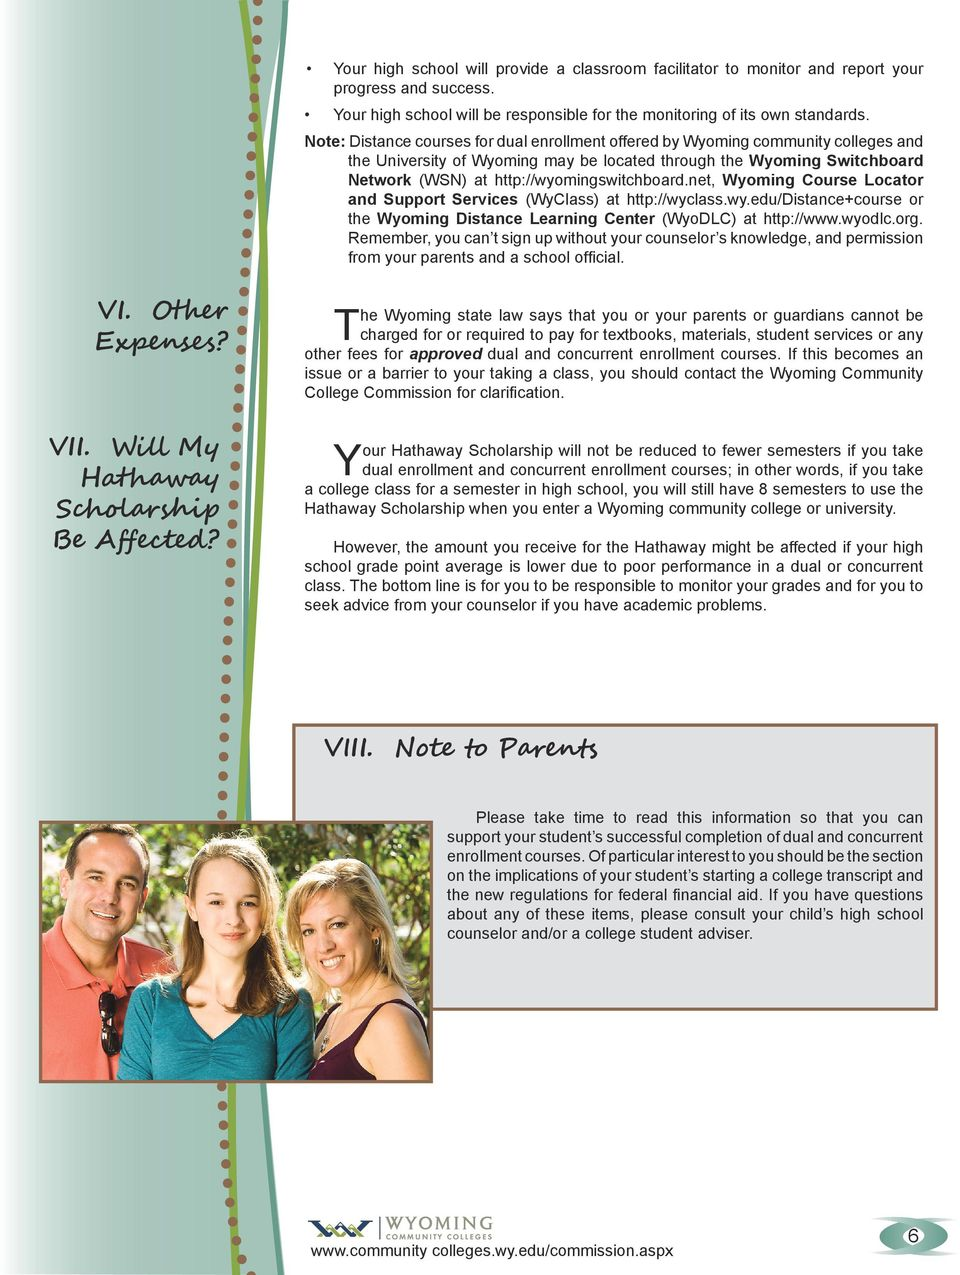 http://wyomingswitchboard.net, Wyoming Course Locator and Support Services (WyClass) at http://wyclass.wy.edu/distance+course or the Wyoming Distance Learning Center (WyoDLC) at http://www.wyodlc.org.